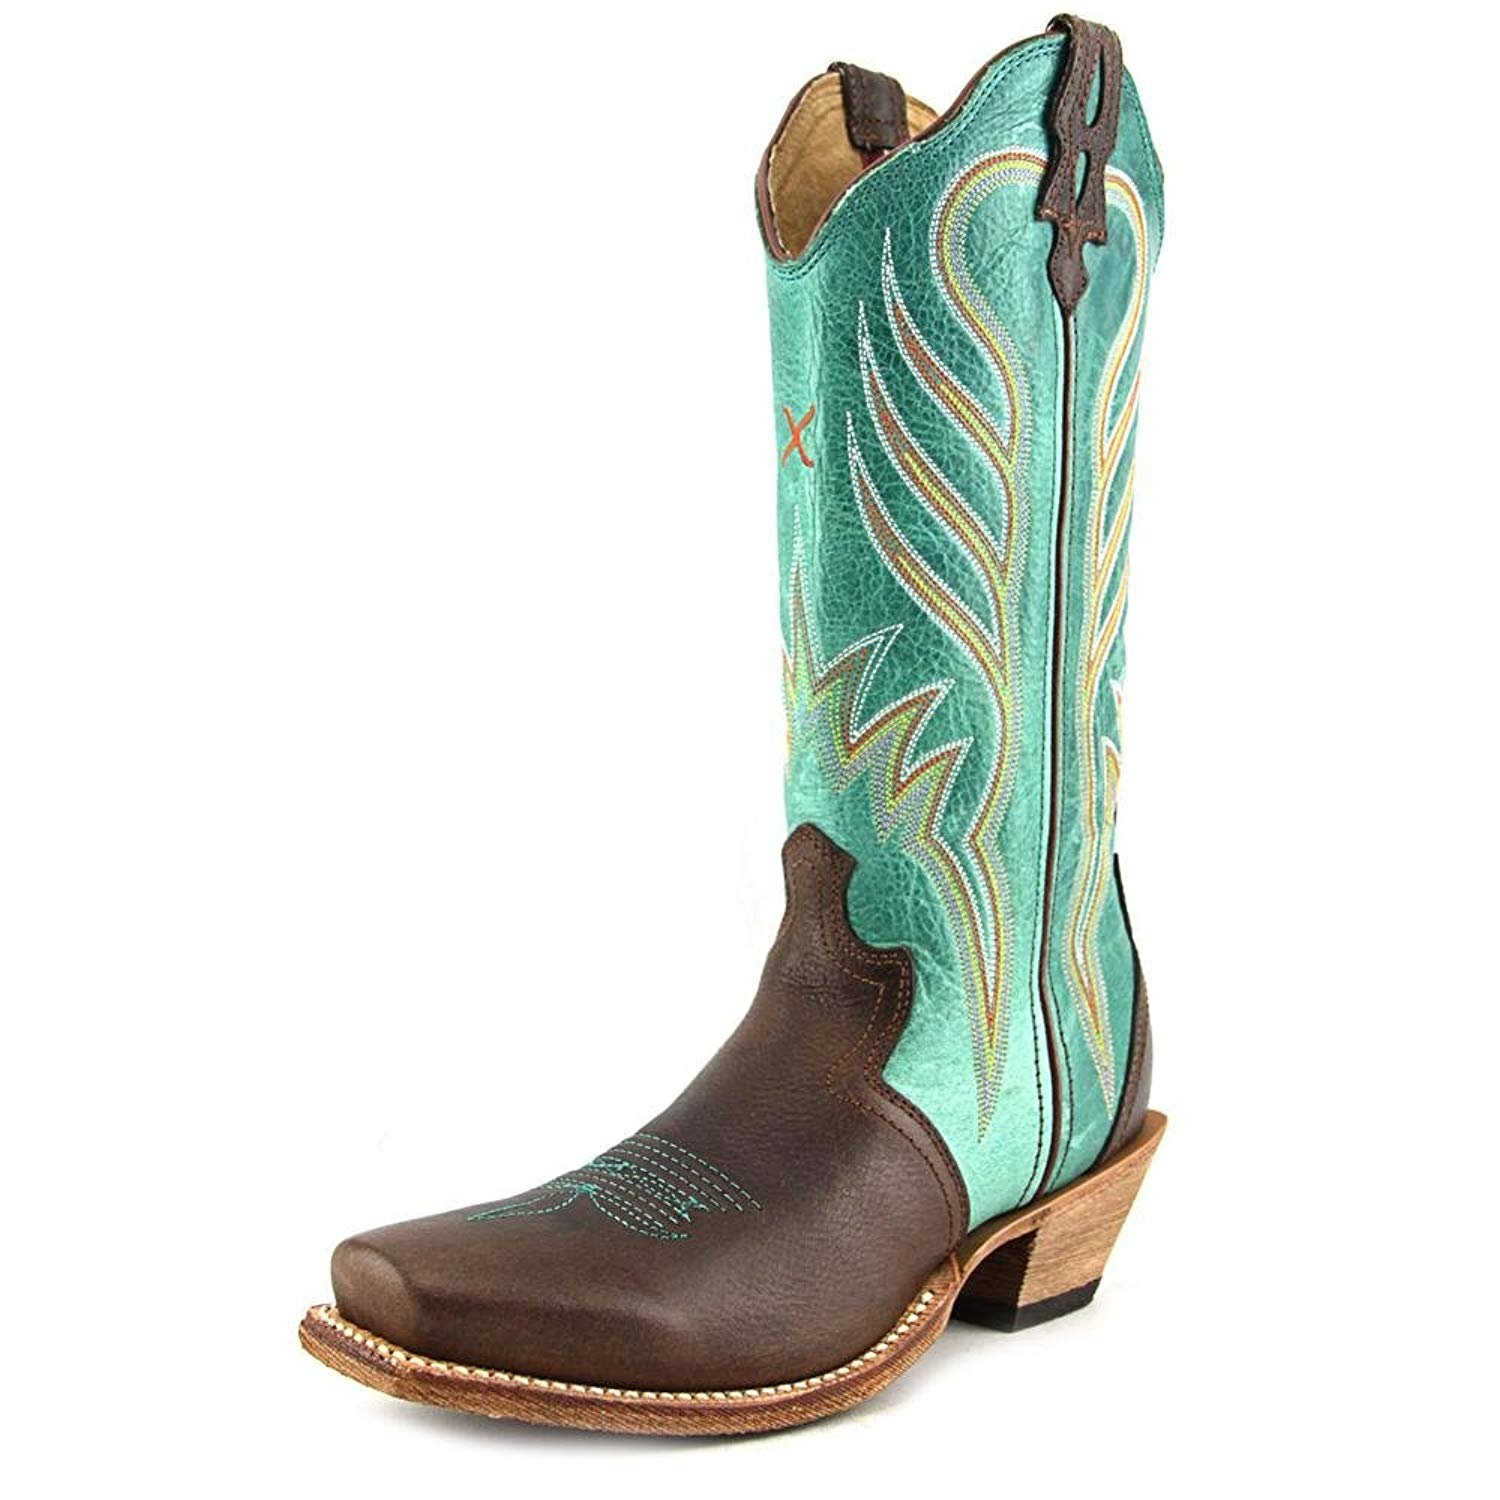 c31f5cb535f Twisted X Women's Turquoise Steppin' Out Cowgirl Boot Square Toe - Wso0015